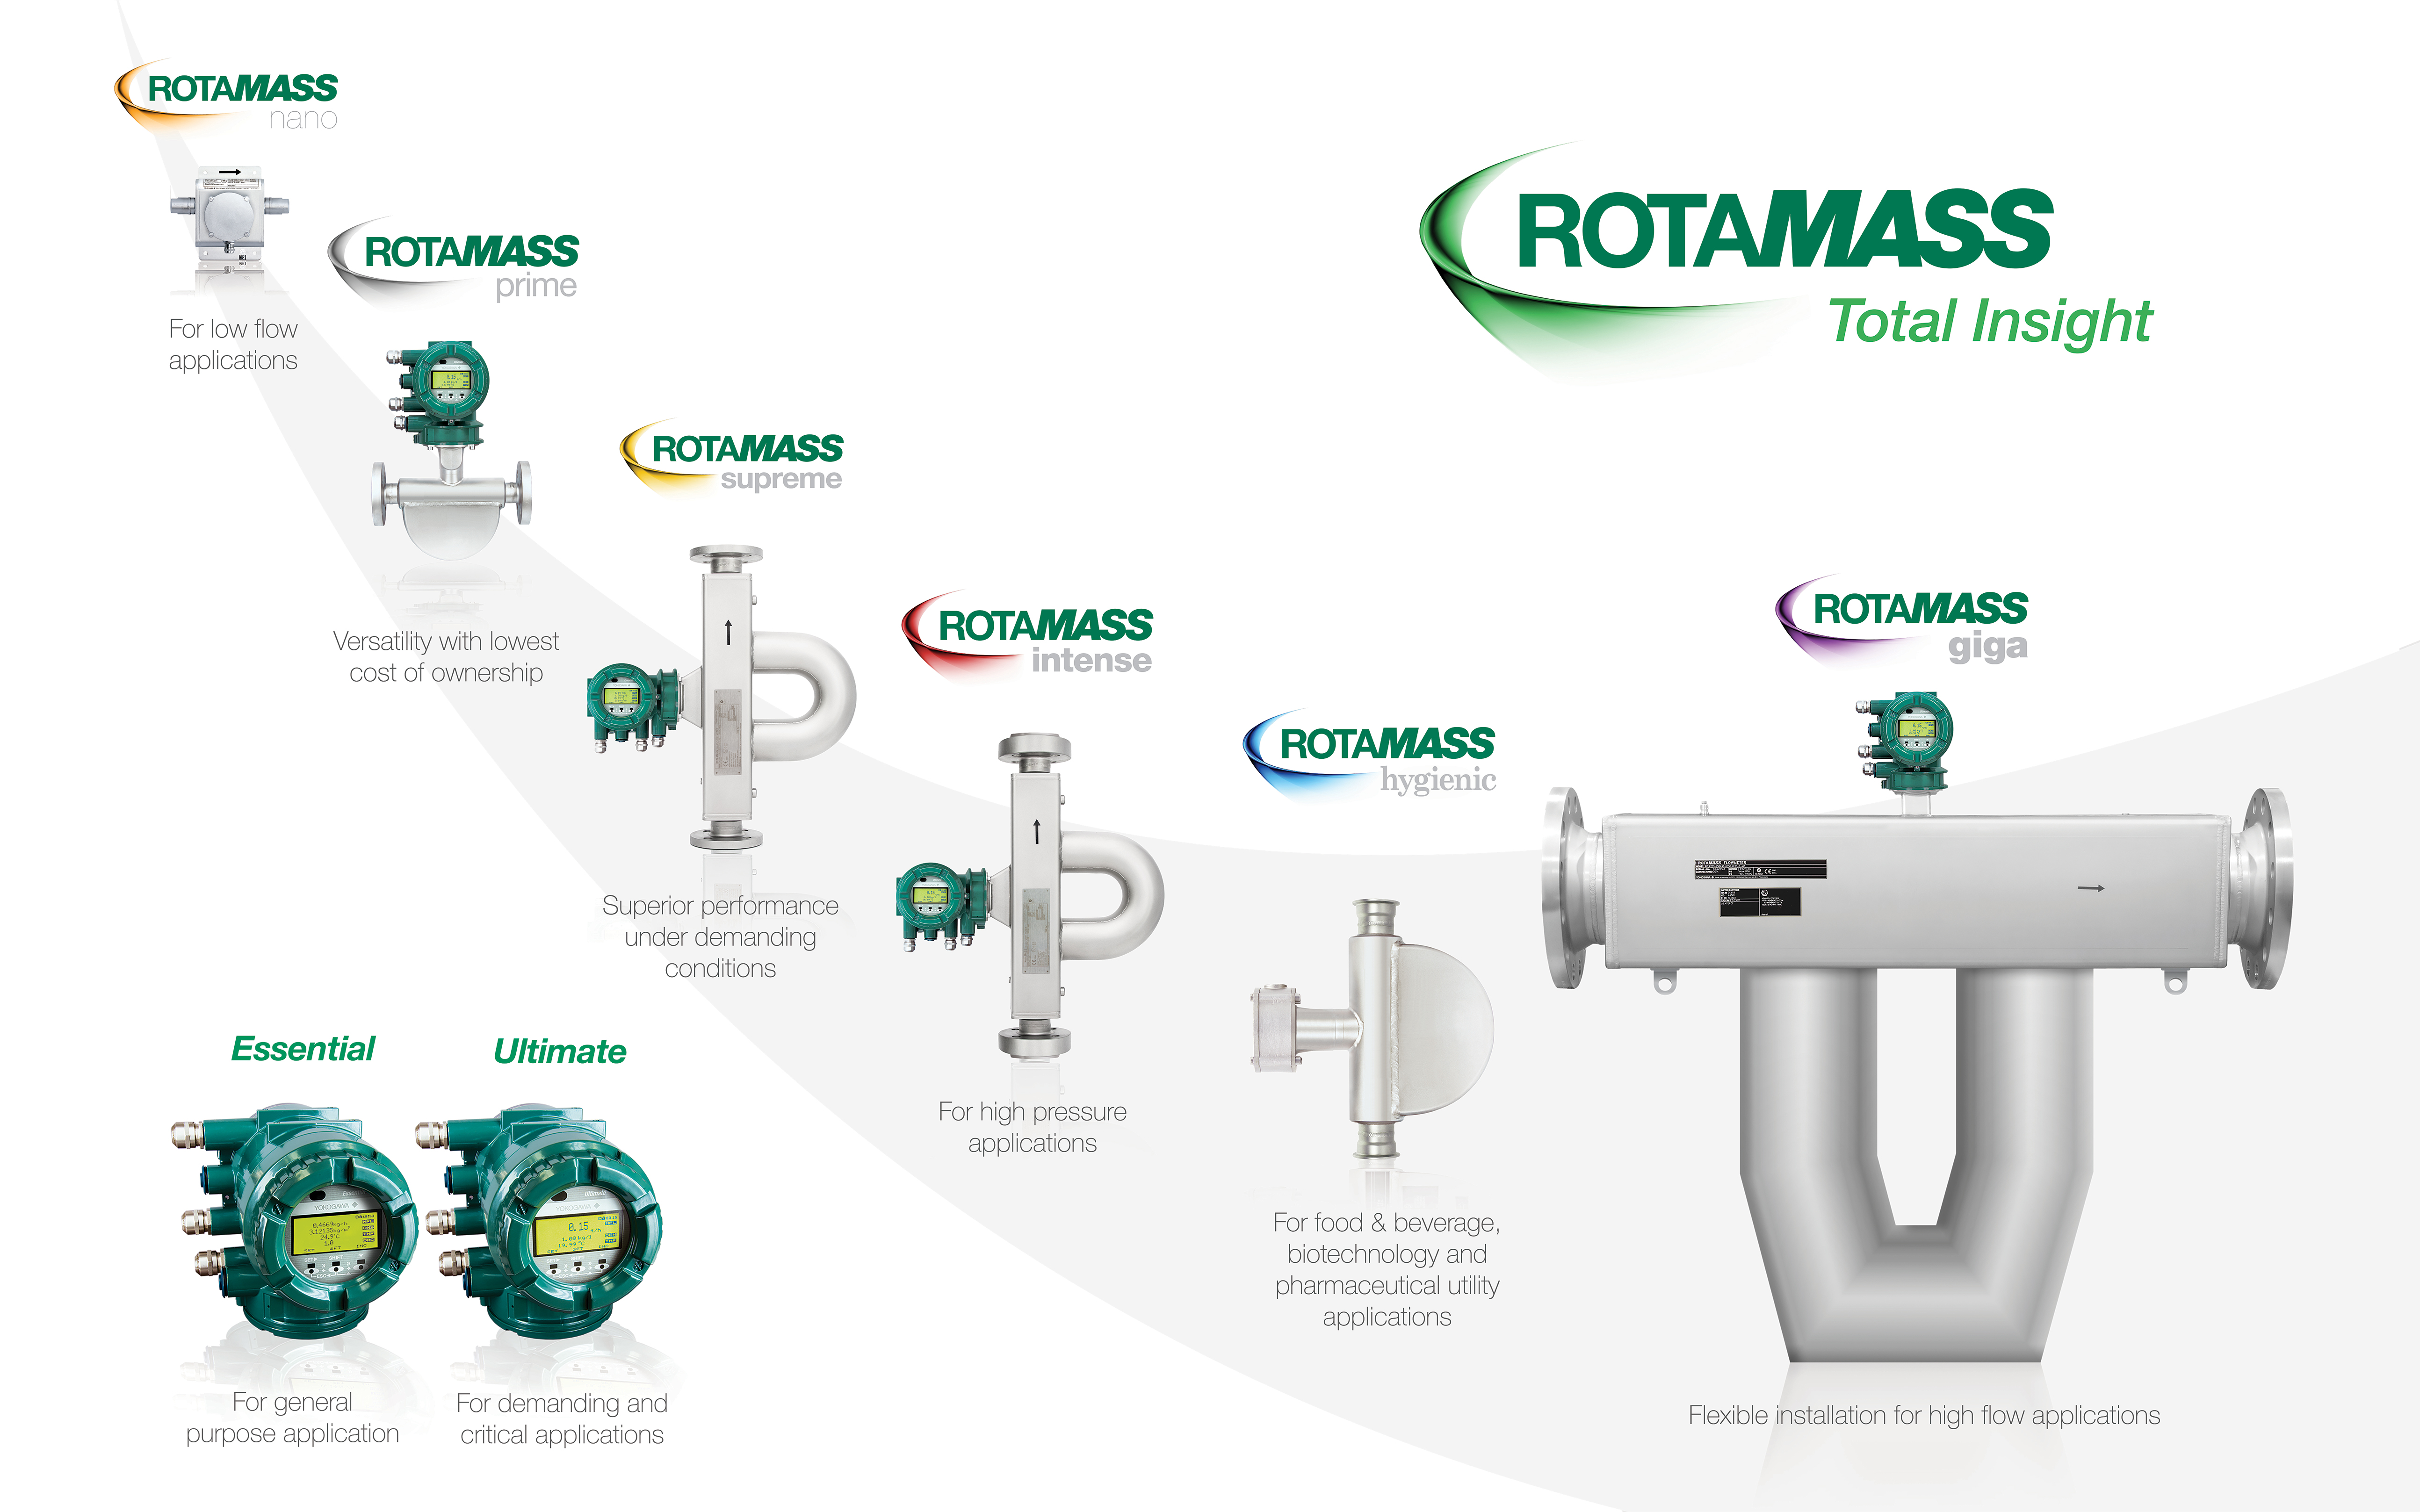 ROTAMASS Total Insight